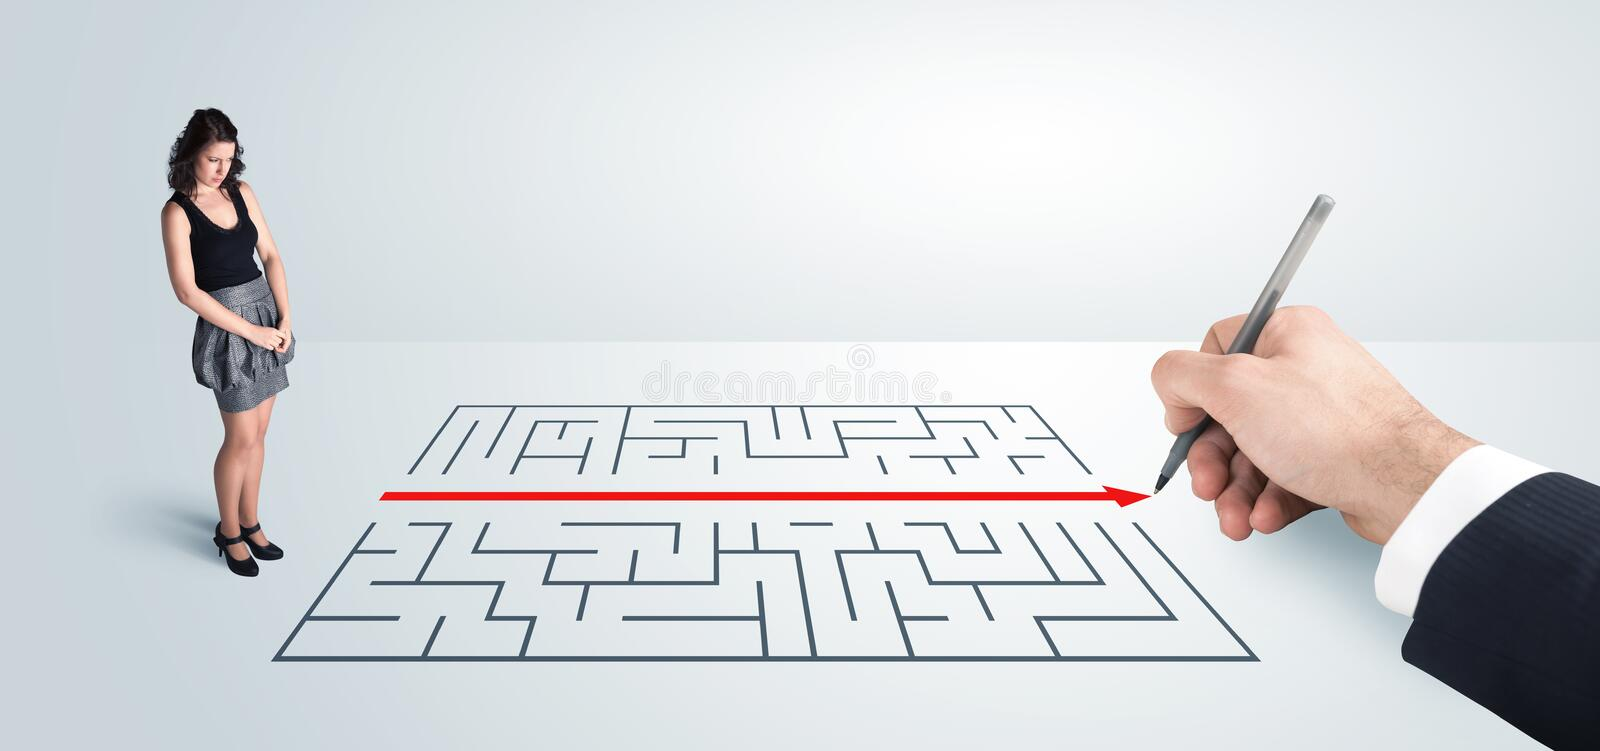 Business woman looking at hand drawing solution for maze. Solution concept stock image